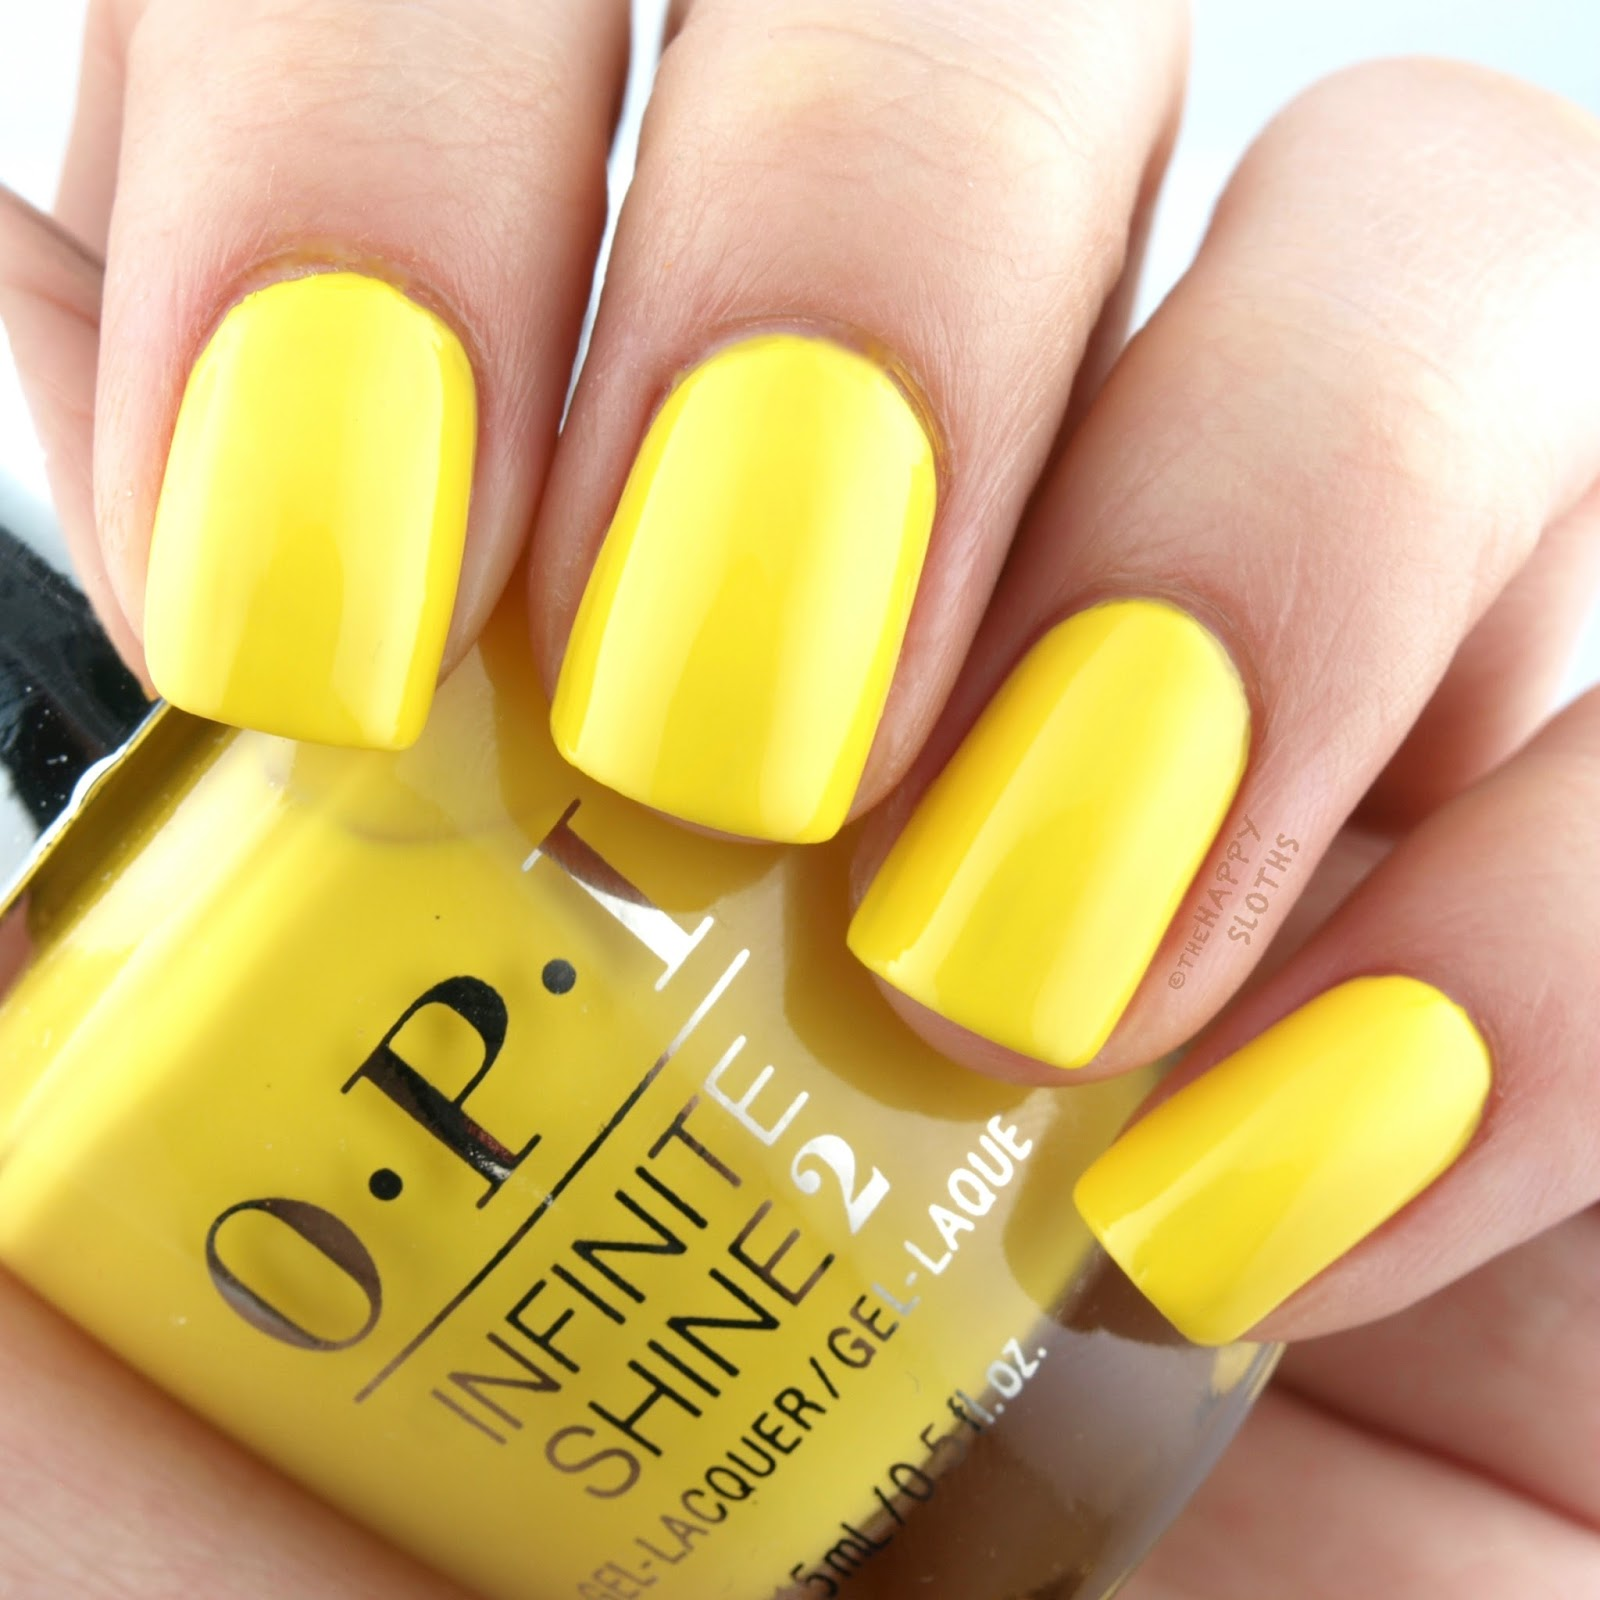 OPI Fiji Exotic Birds Do Not Tweet Swatches and Review